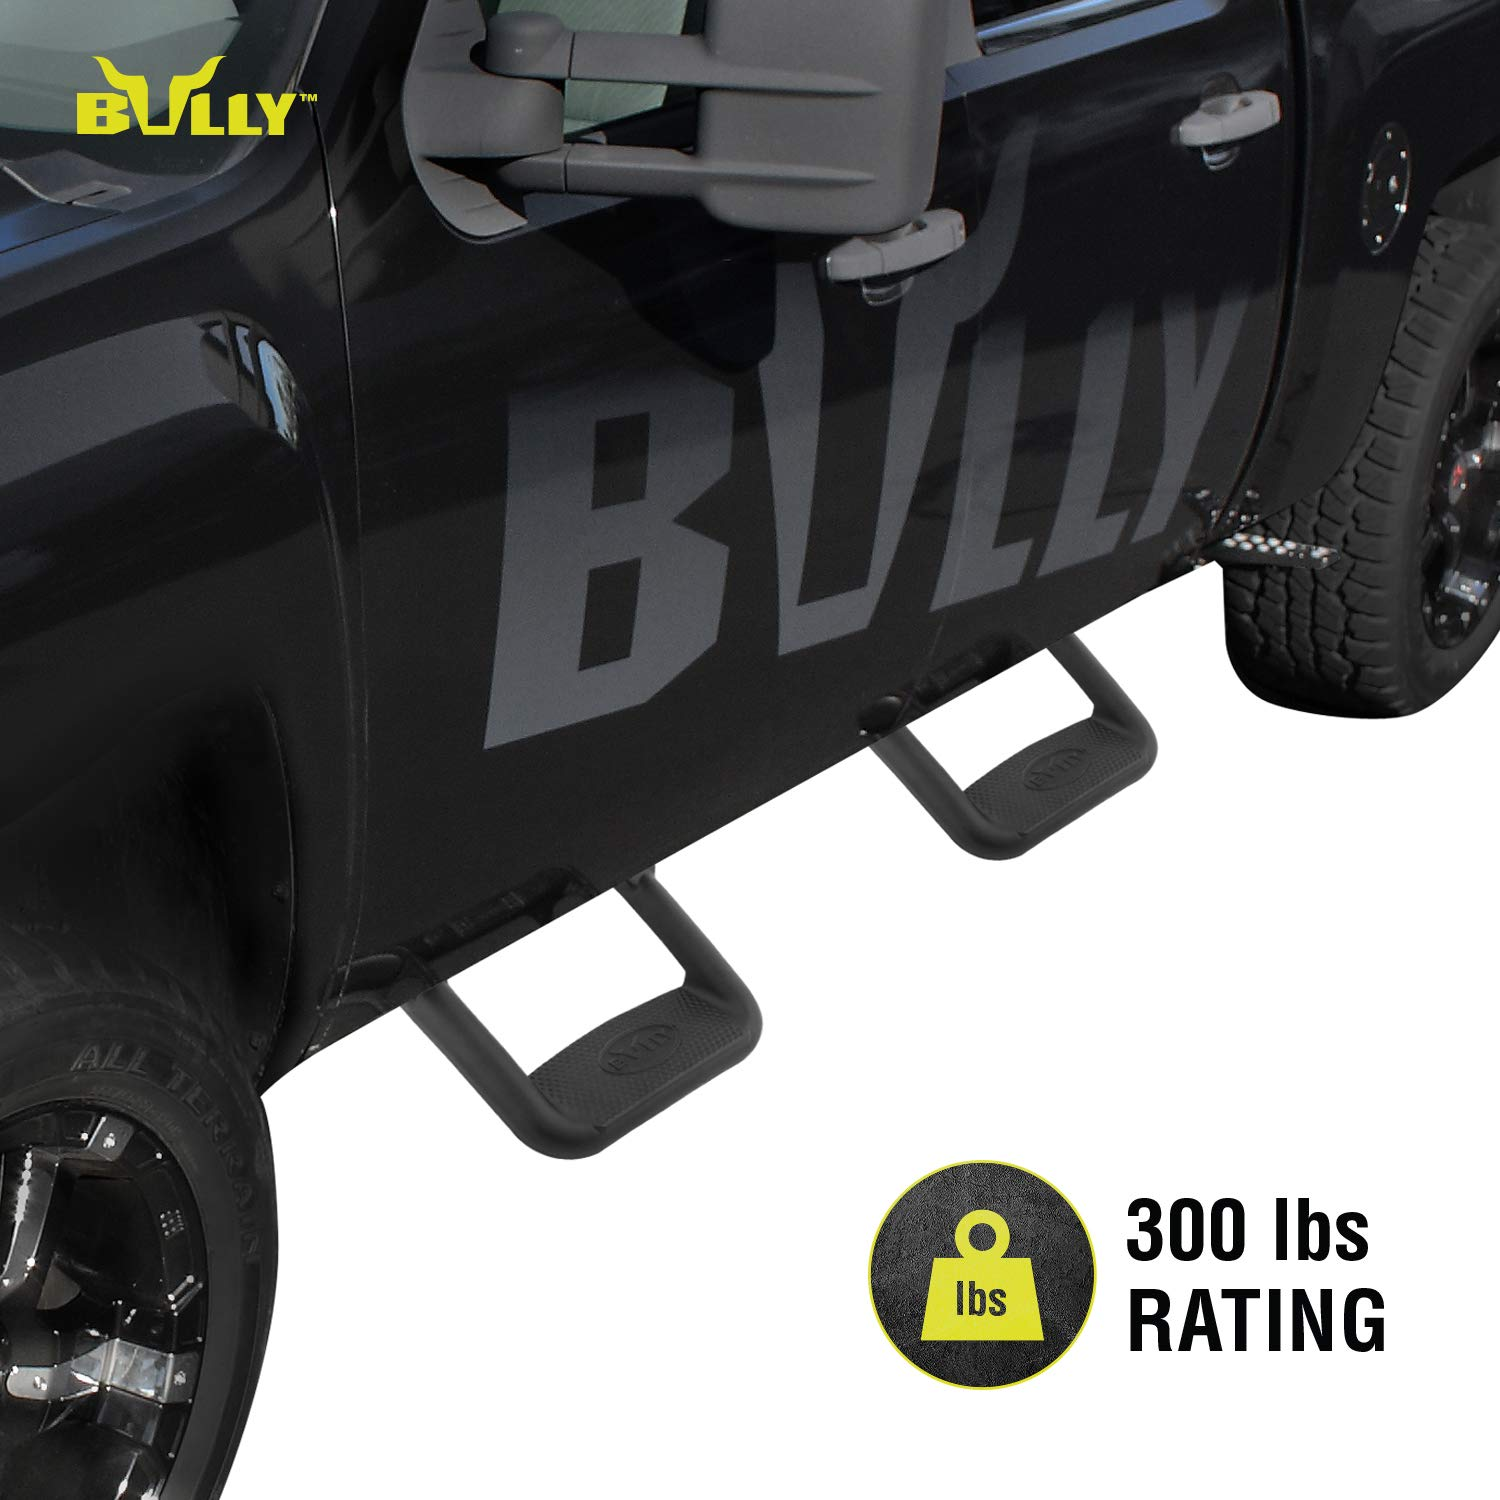 Bully BBS-1103 Truck Black Powder Coated Side Step Set, 2 Pieces (1 Pair), Includes Mounting Brackets - Fits Various Trucks from Chevy (Chevrolet), Ford, Toyota, GMC, Dodge RAM and Jeep